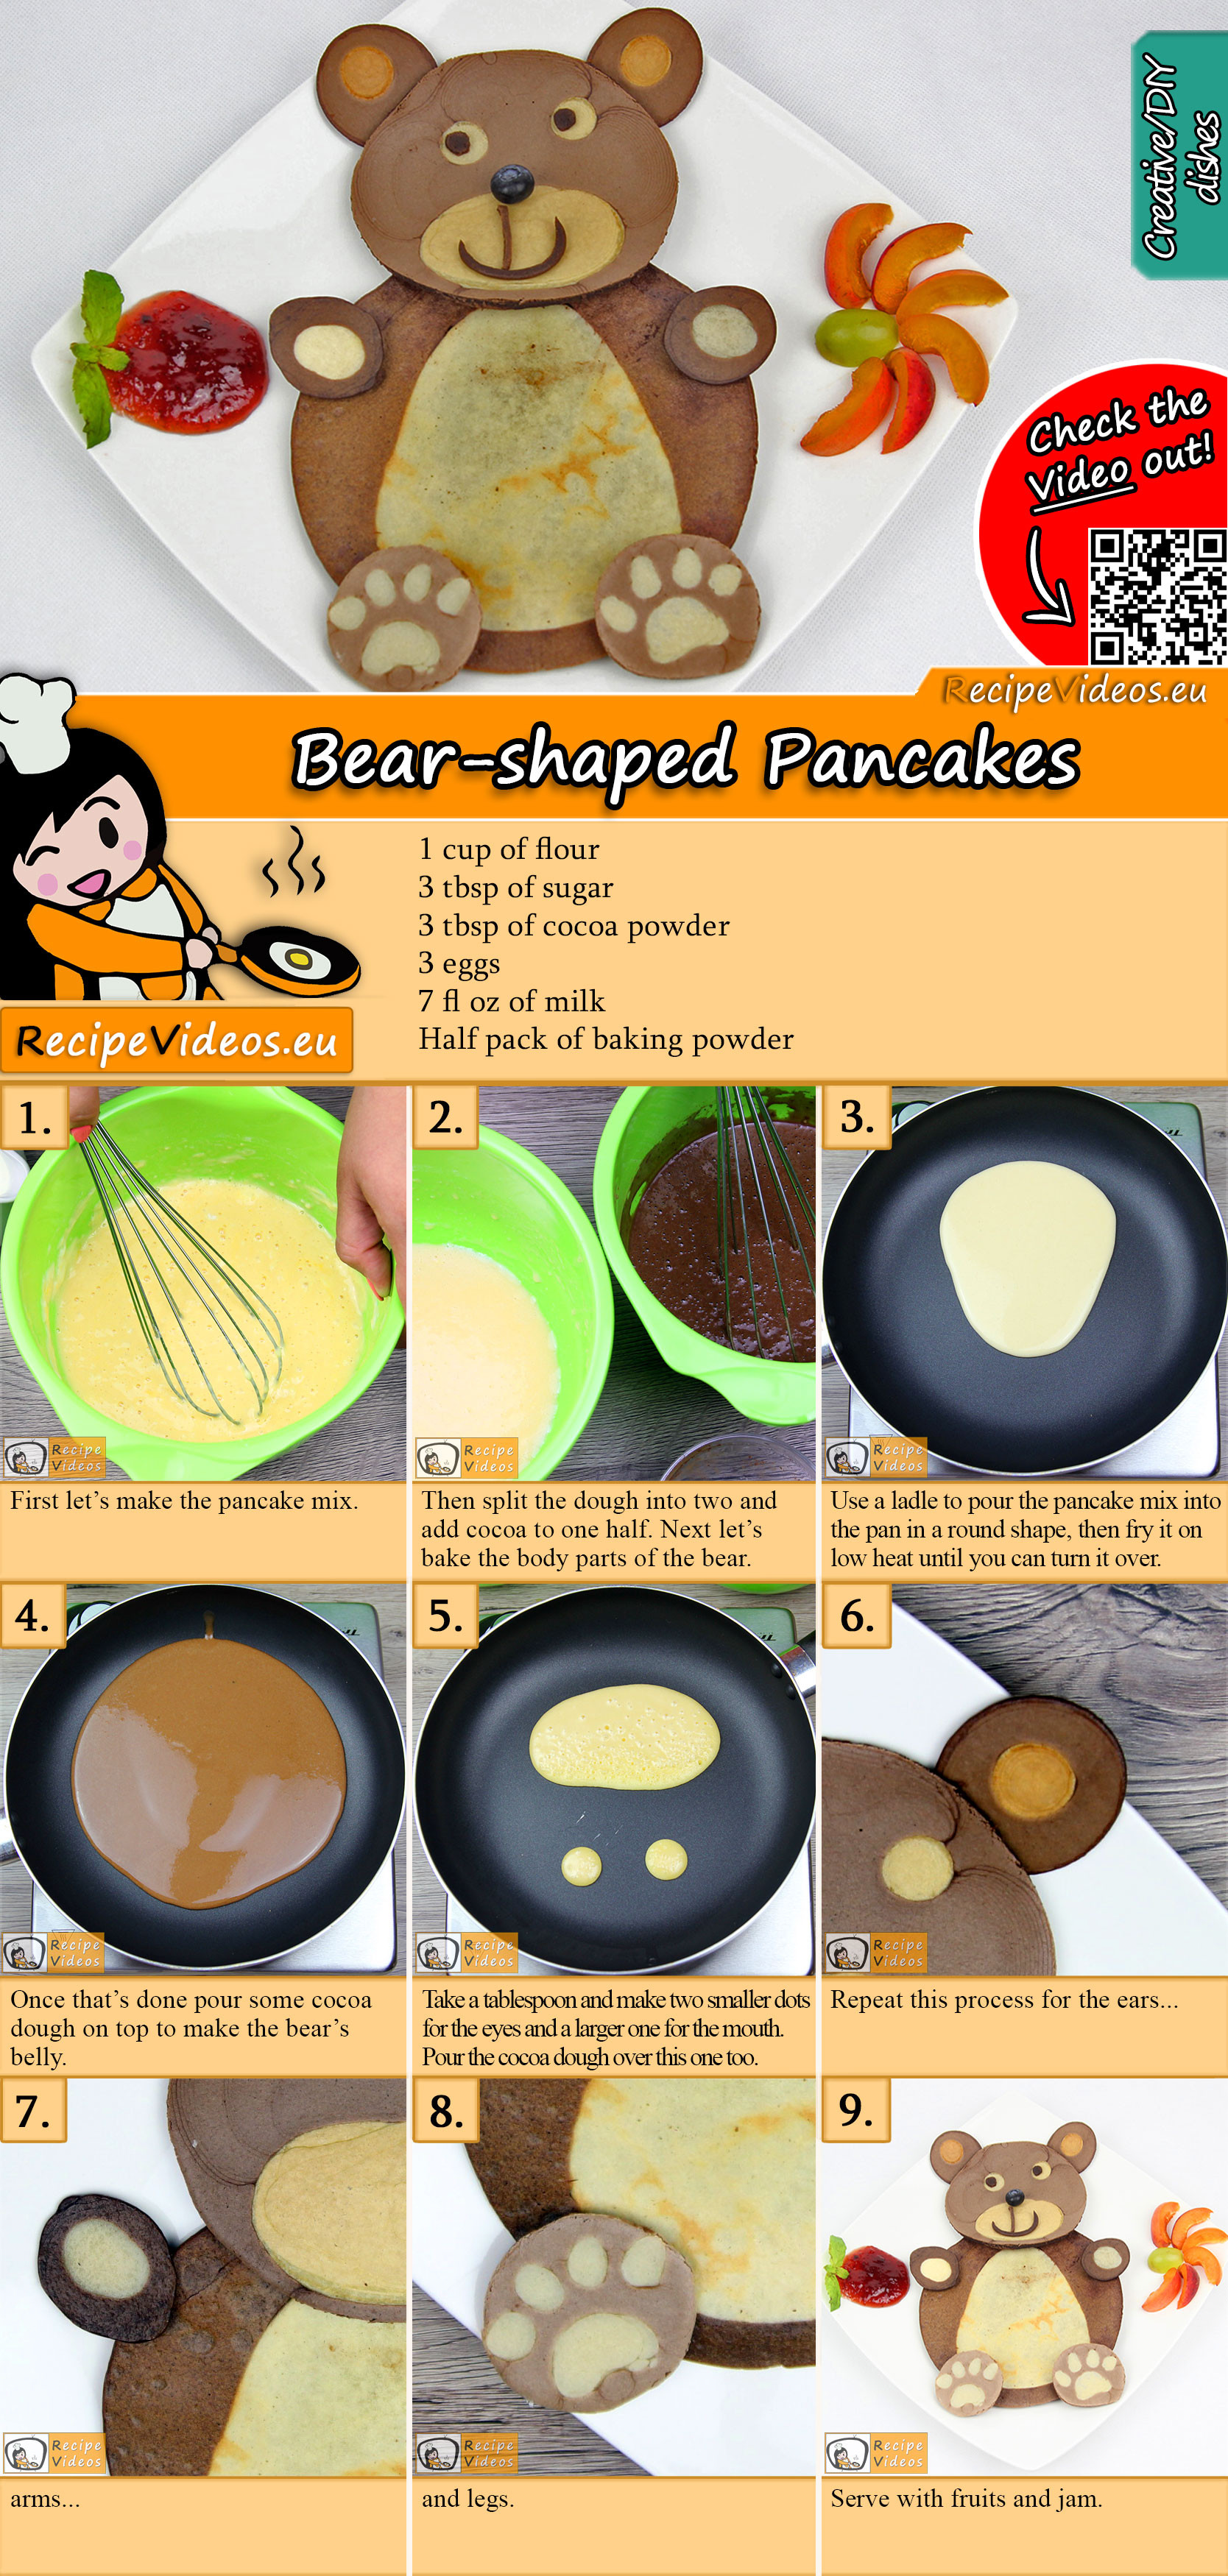 Teddy Pancakes recipe with video